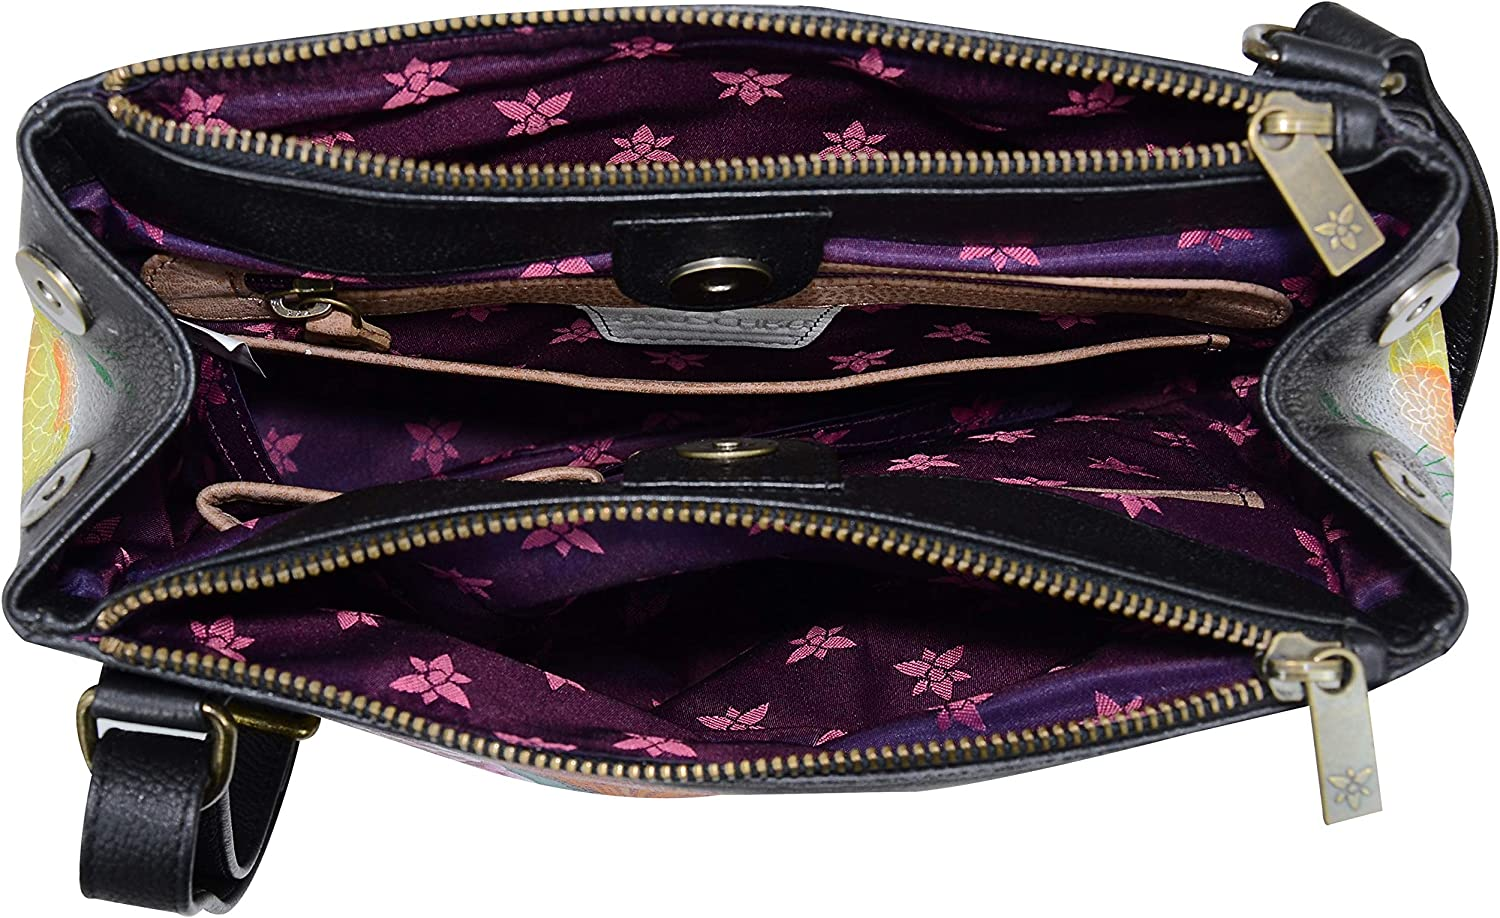 Anuschka Handpainted Leather Triple Compartment Convertible Tote